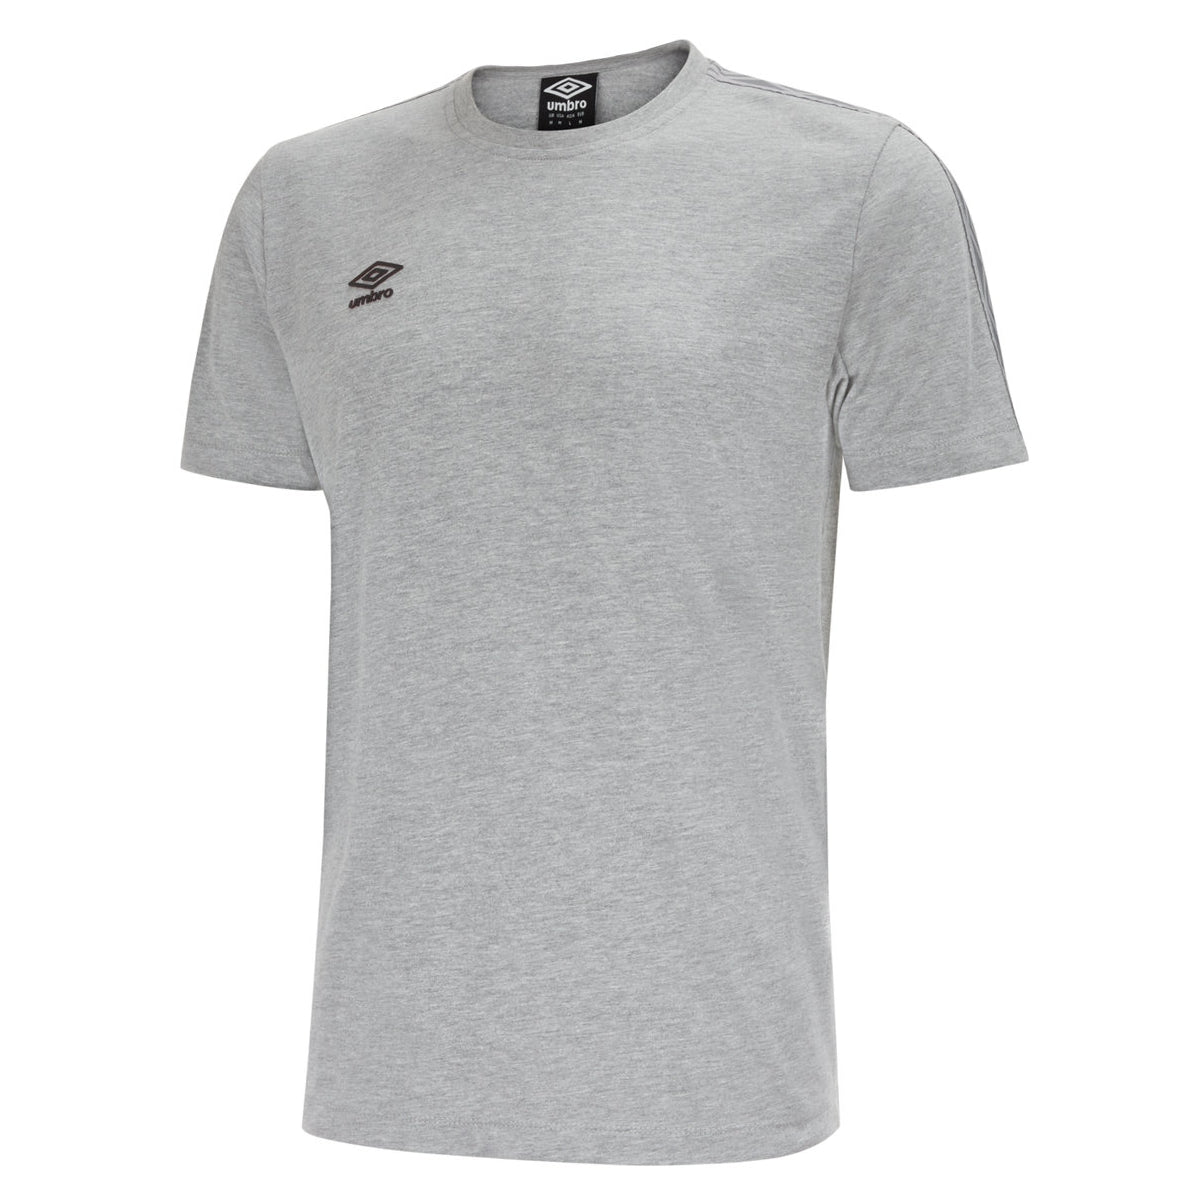 Umbro Pro Taped Tee in grey marl with black Umbro logo on right chest